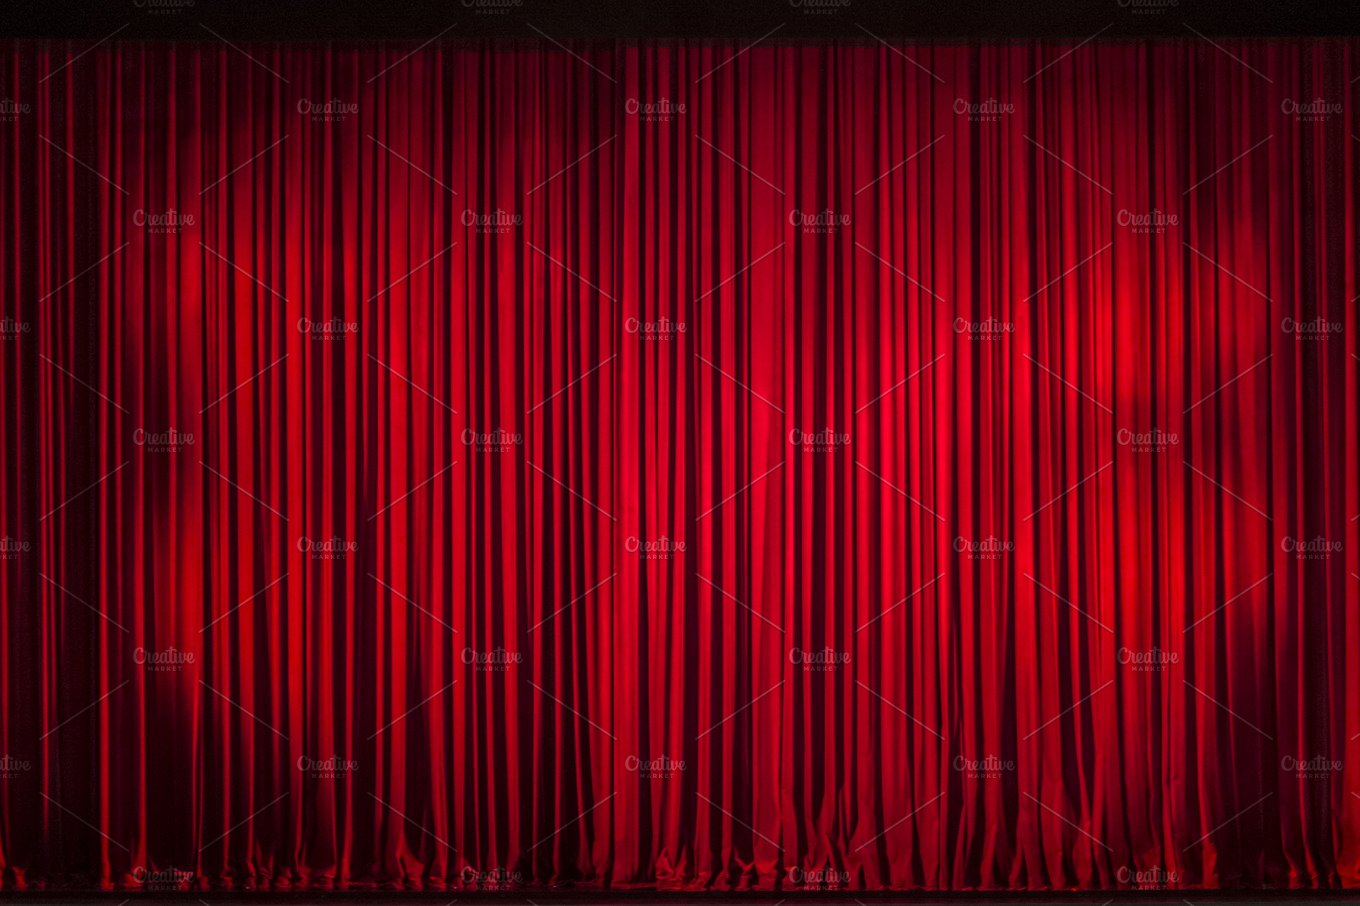 chic s f curtain design featuring and ideas panels m l decorating red double interesting source theater velvet color curtains features